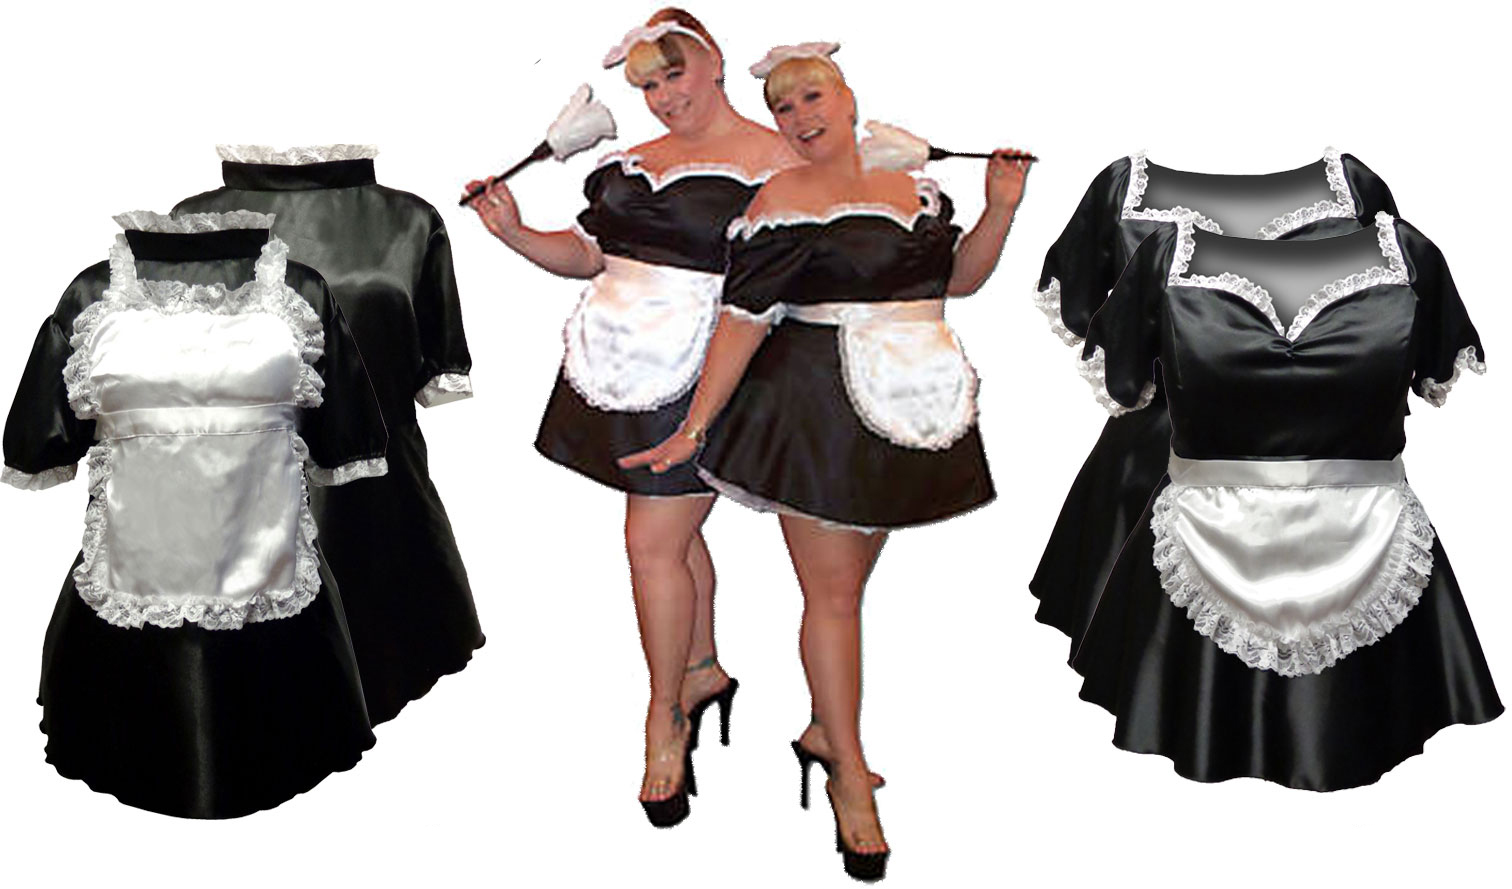 Black u0026 White French Maid Costume Sexy Plus Size u0026 Supersize Halloween Costume! 1x 3x  sc 1 th 172 : black and white halloween costumes  - Germanpascual.Com